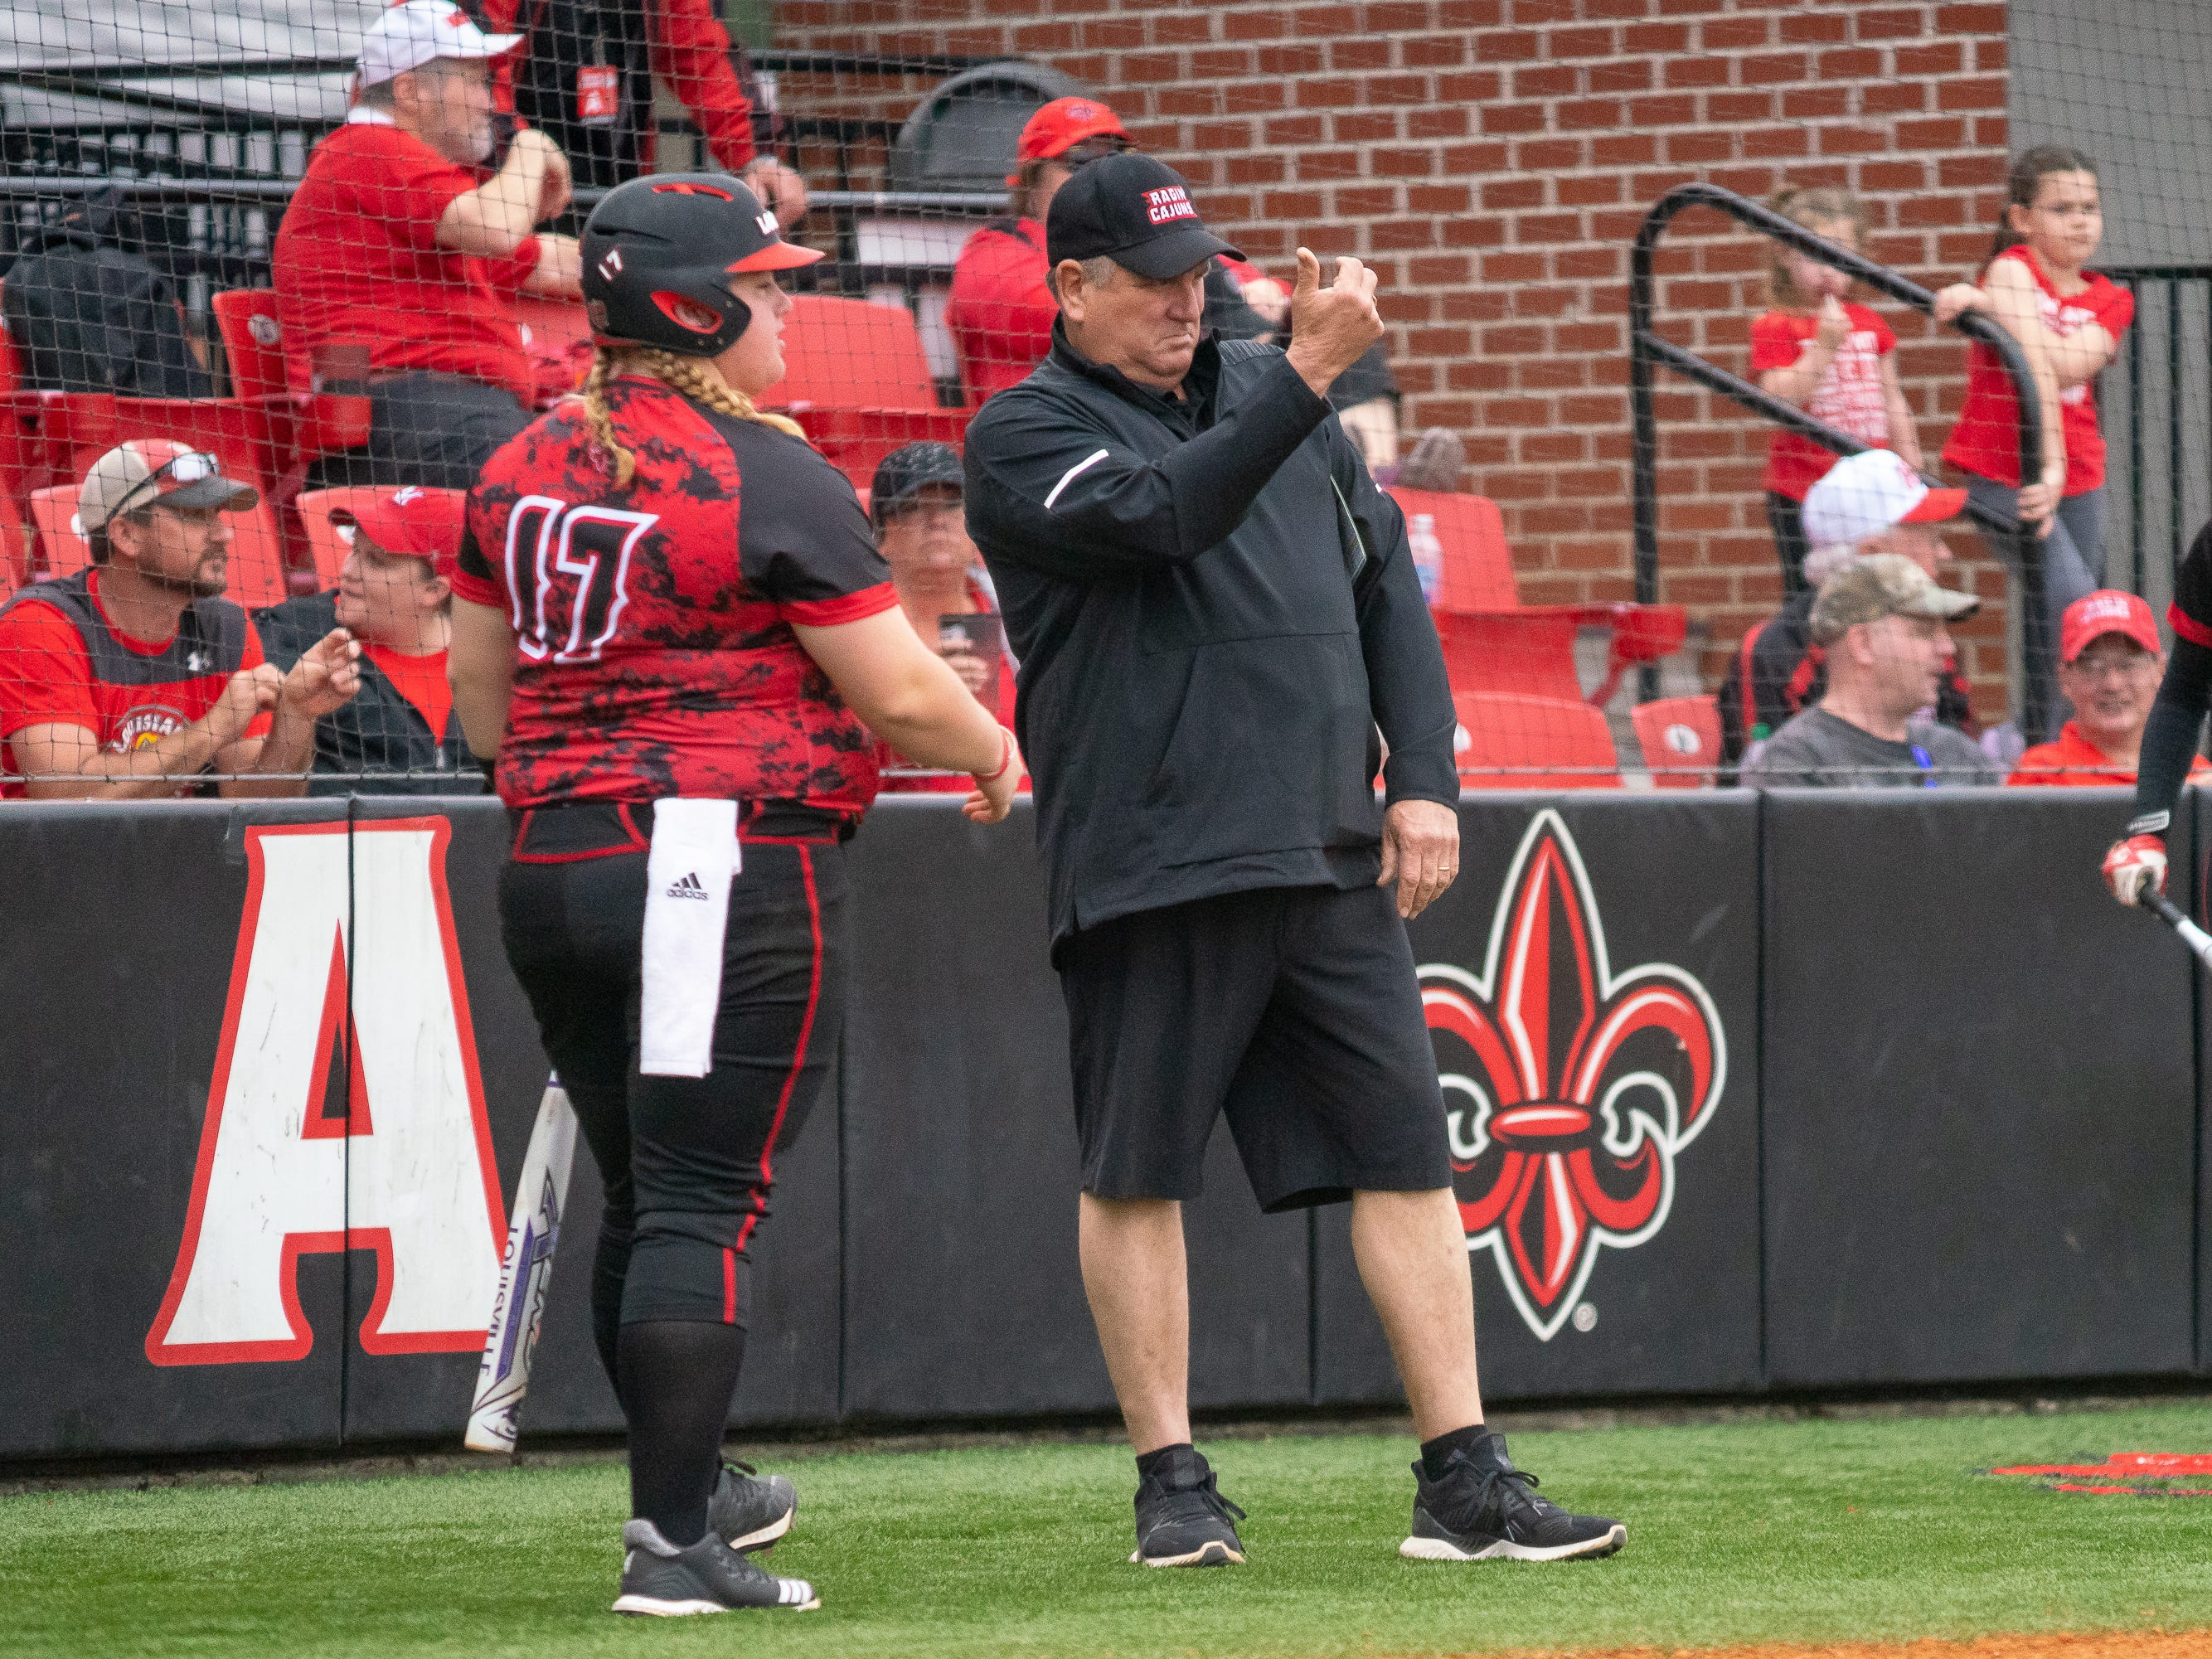 UL's head softball coach Gerry Glasco signals his players to come to the sidelines as the Ragin' Cajuns take on Stephen F. Austin at Lamson Park on Saturday, Feb. 16, 2019.